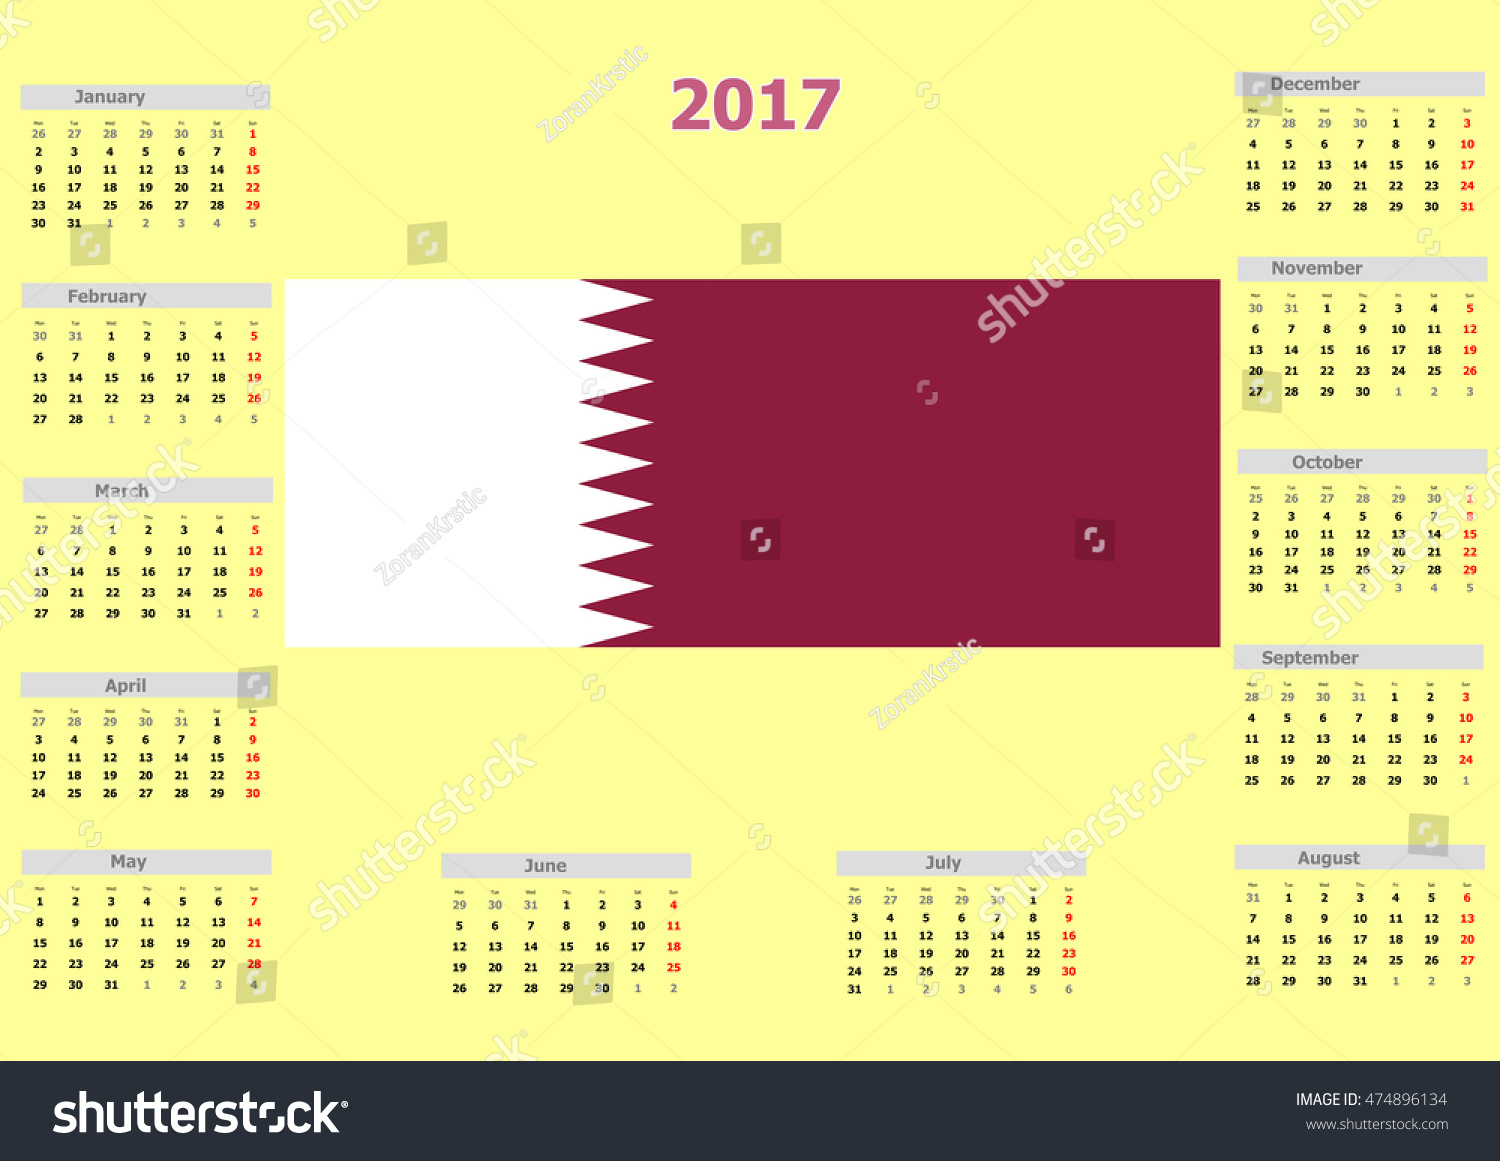 Calendar Qatar : Qatar national vision government communications office